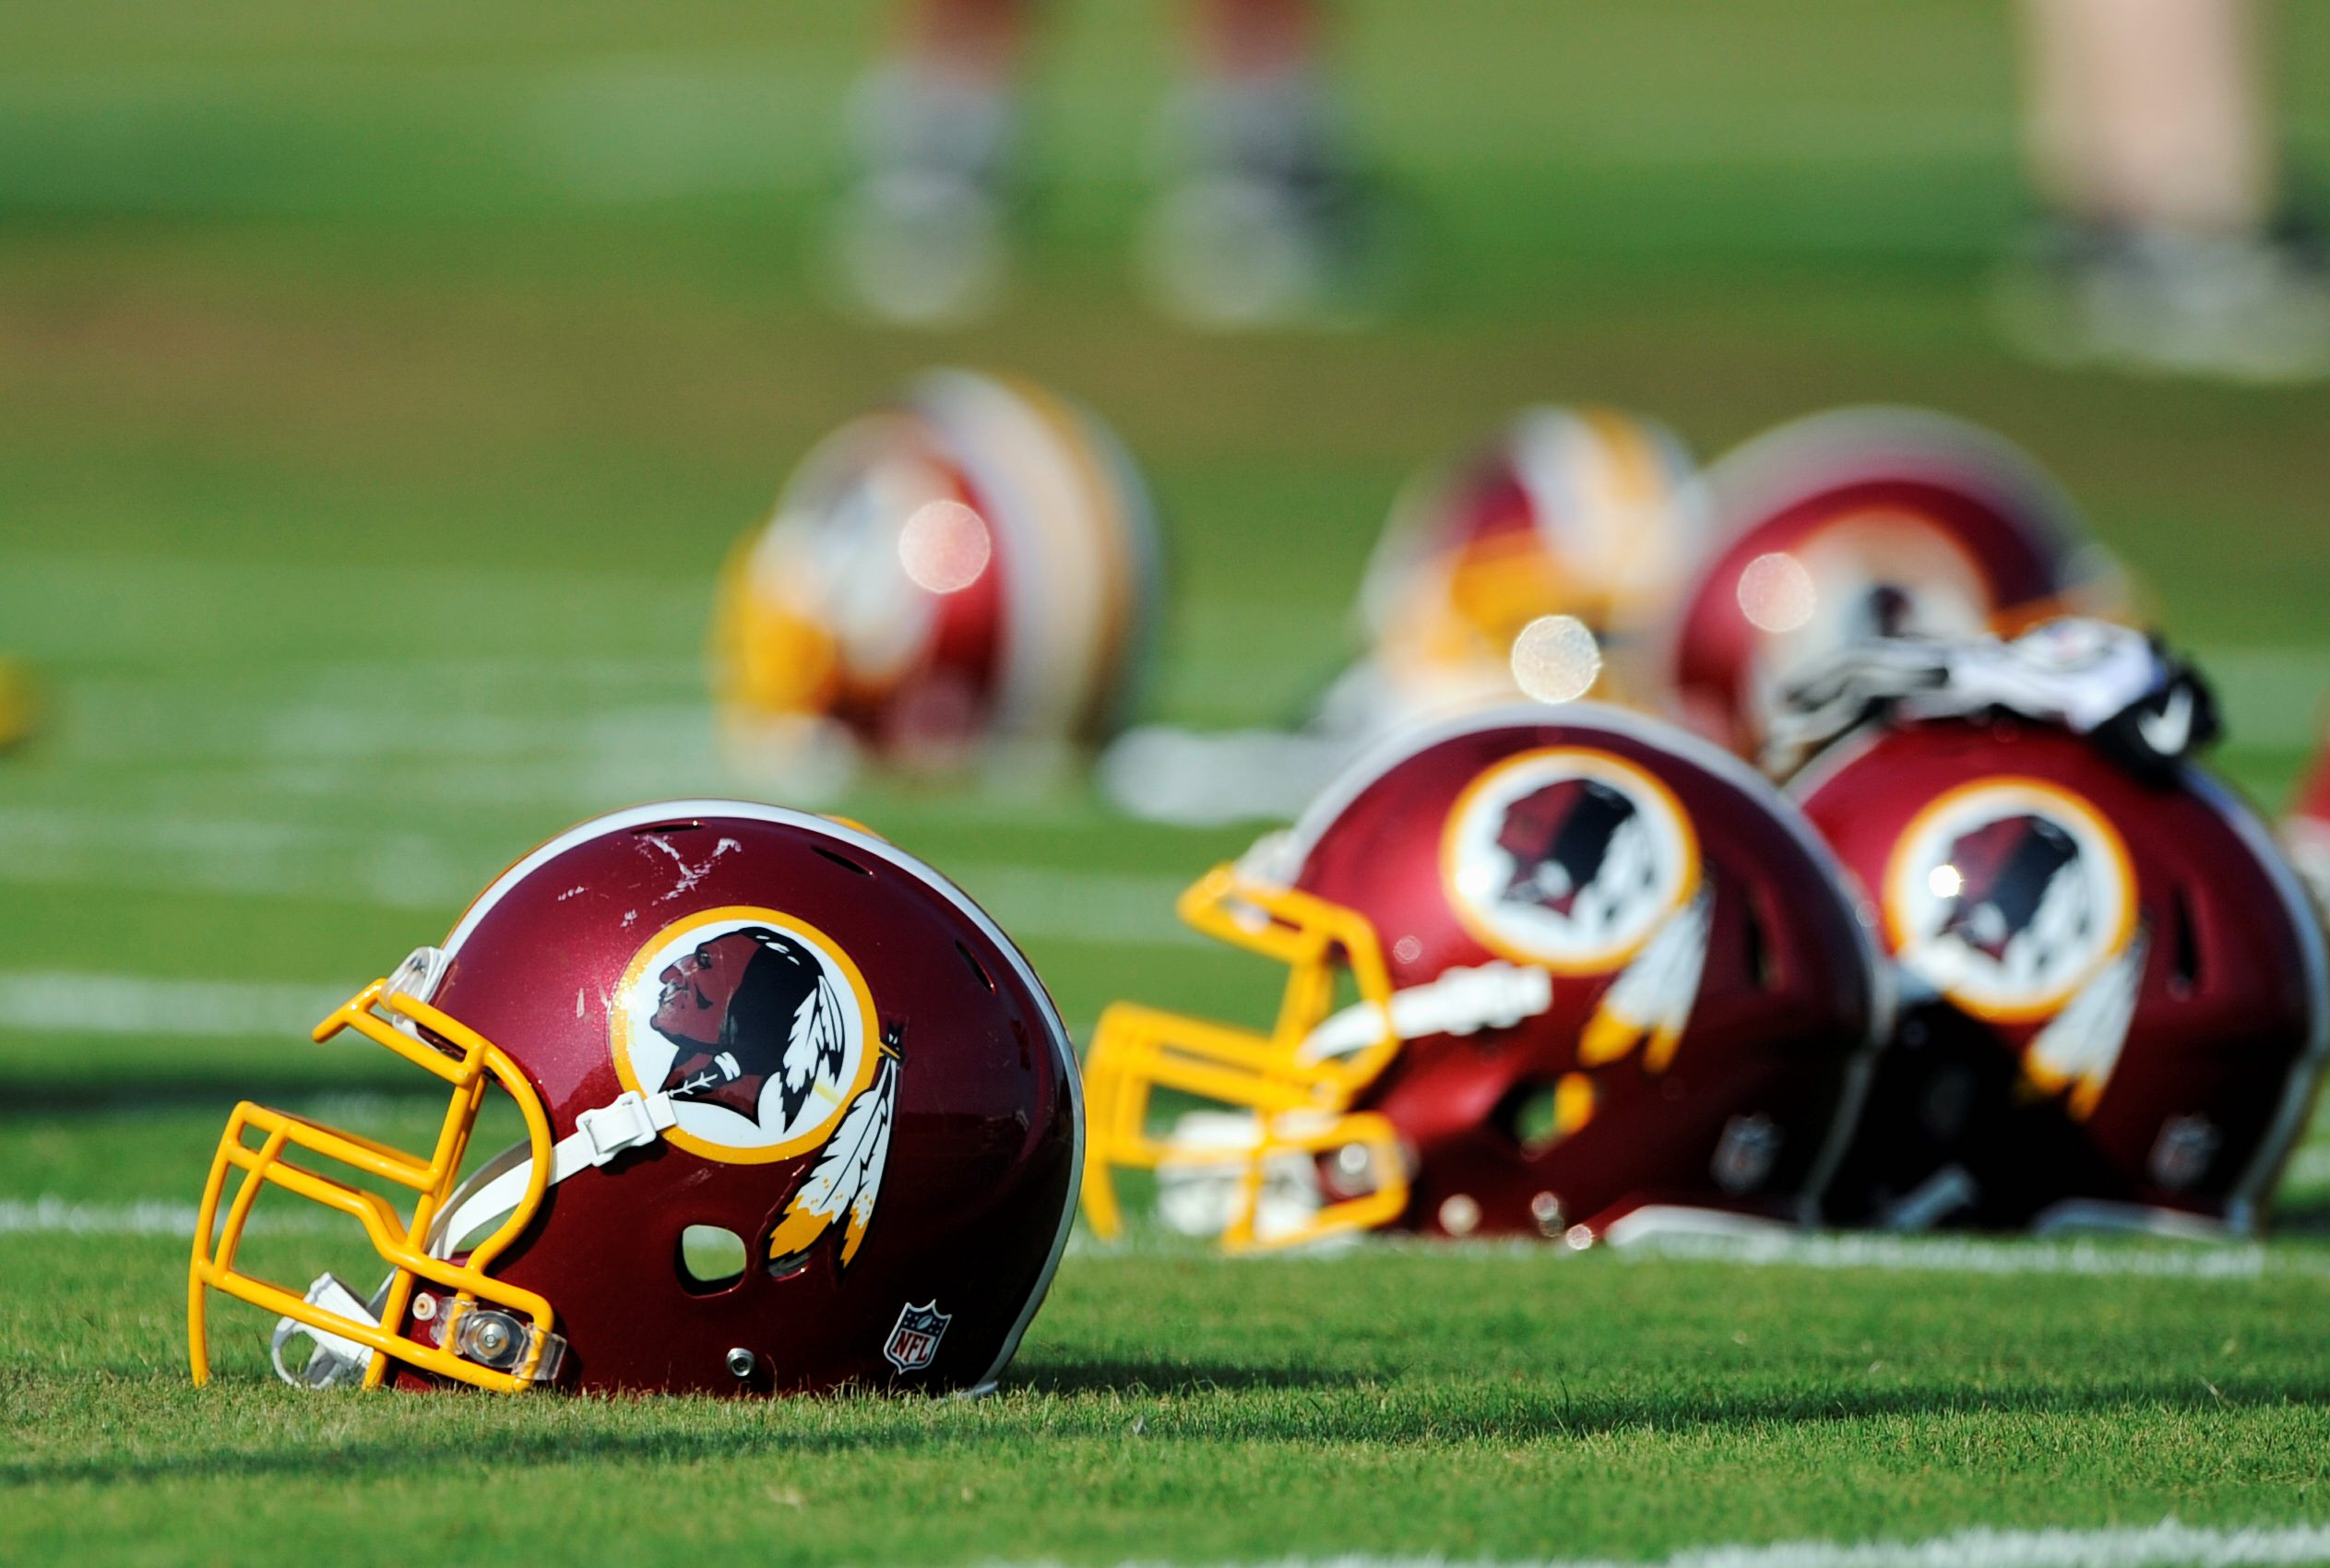 Redskins name drew no public complaints, Patent offices reveals